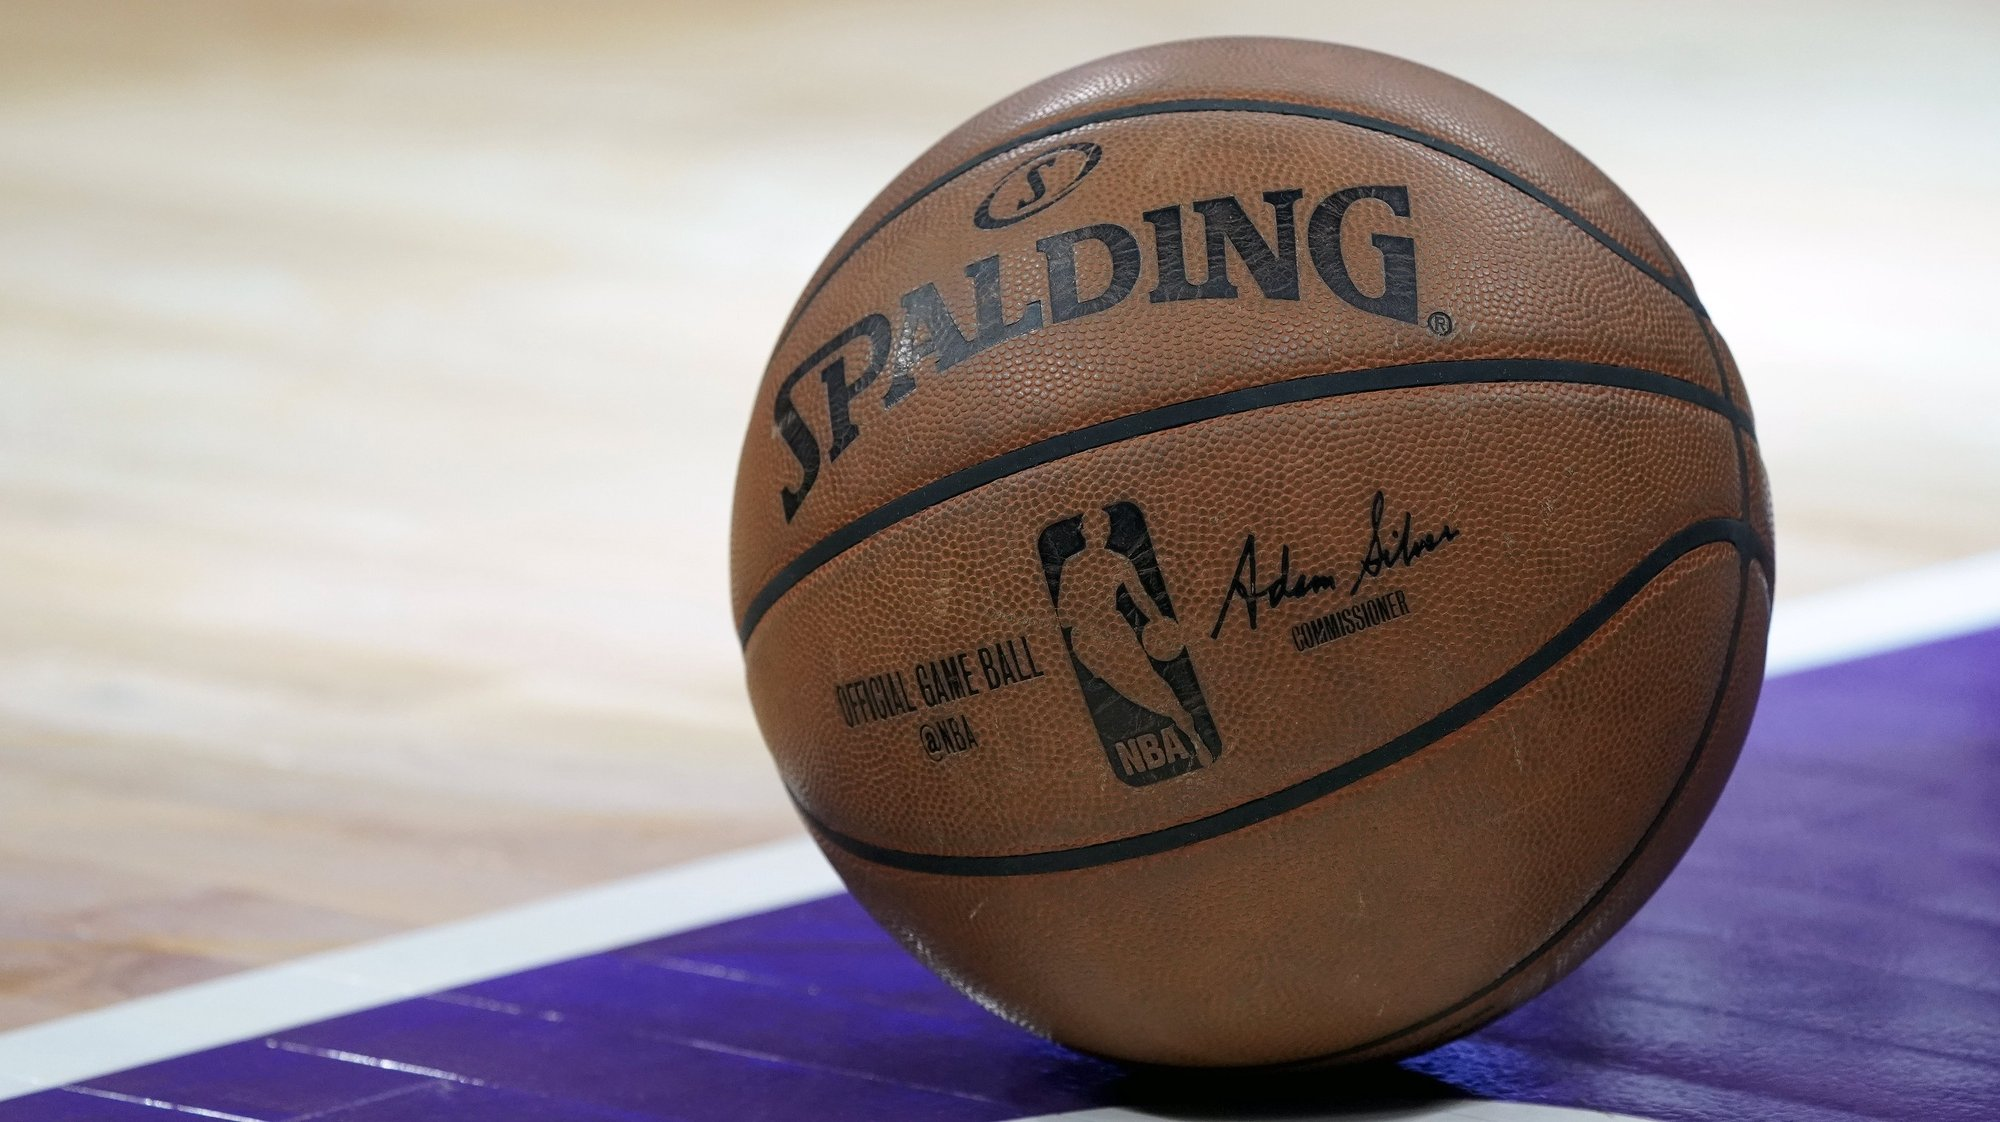 epa06629728 The game ball is on the floor during a time-out in the NBA basketball game between the Boston Celtics and the Sacramento Kings at Golden 1 Center in Sacramento, California, USA, 25 March 2018.  EPA/JOHN G. MABANGLO  SHUTTERSTOCK OUT